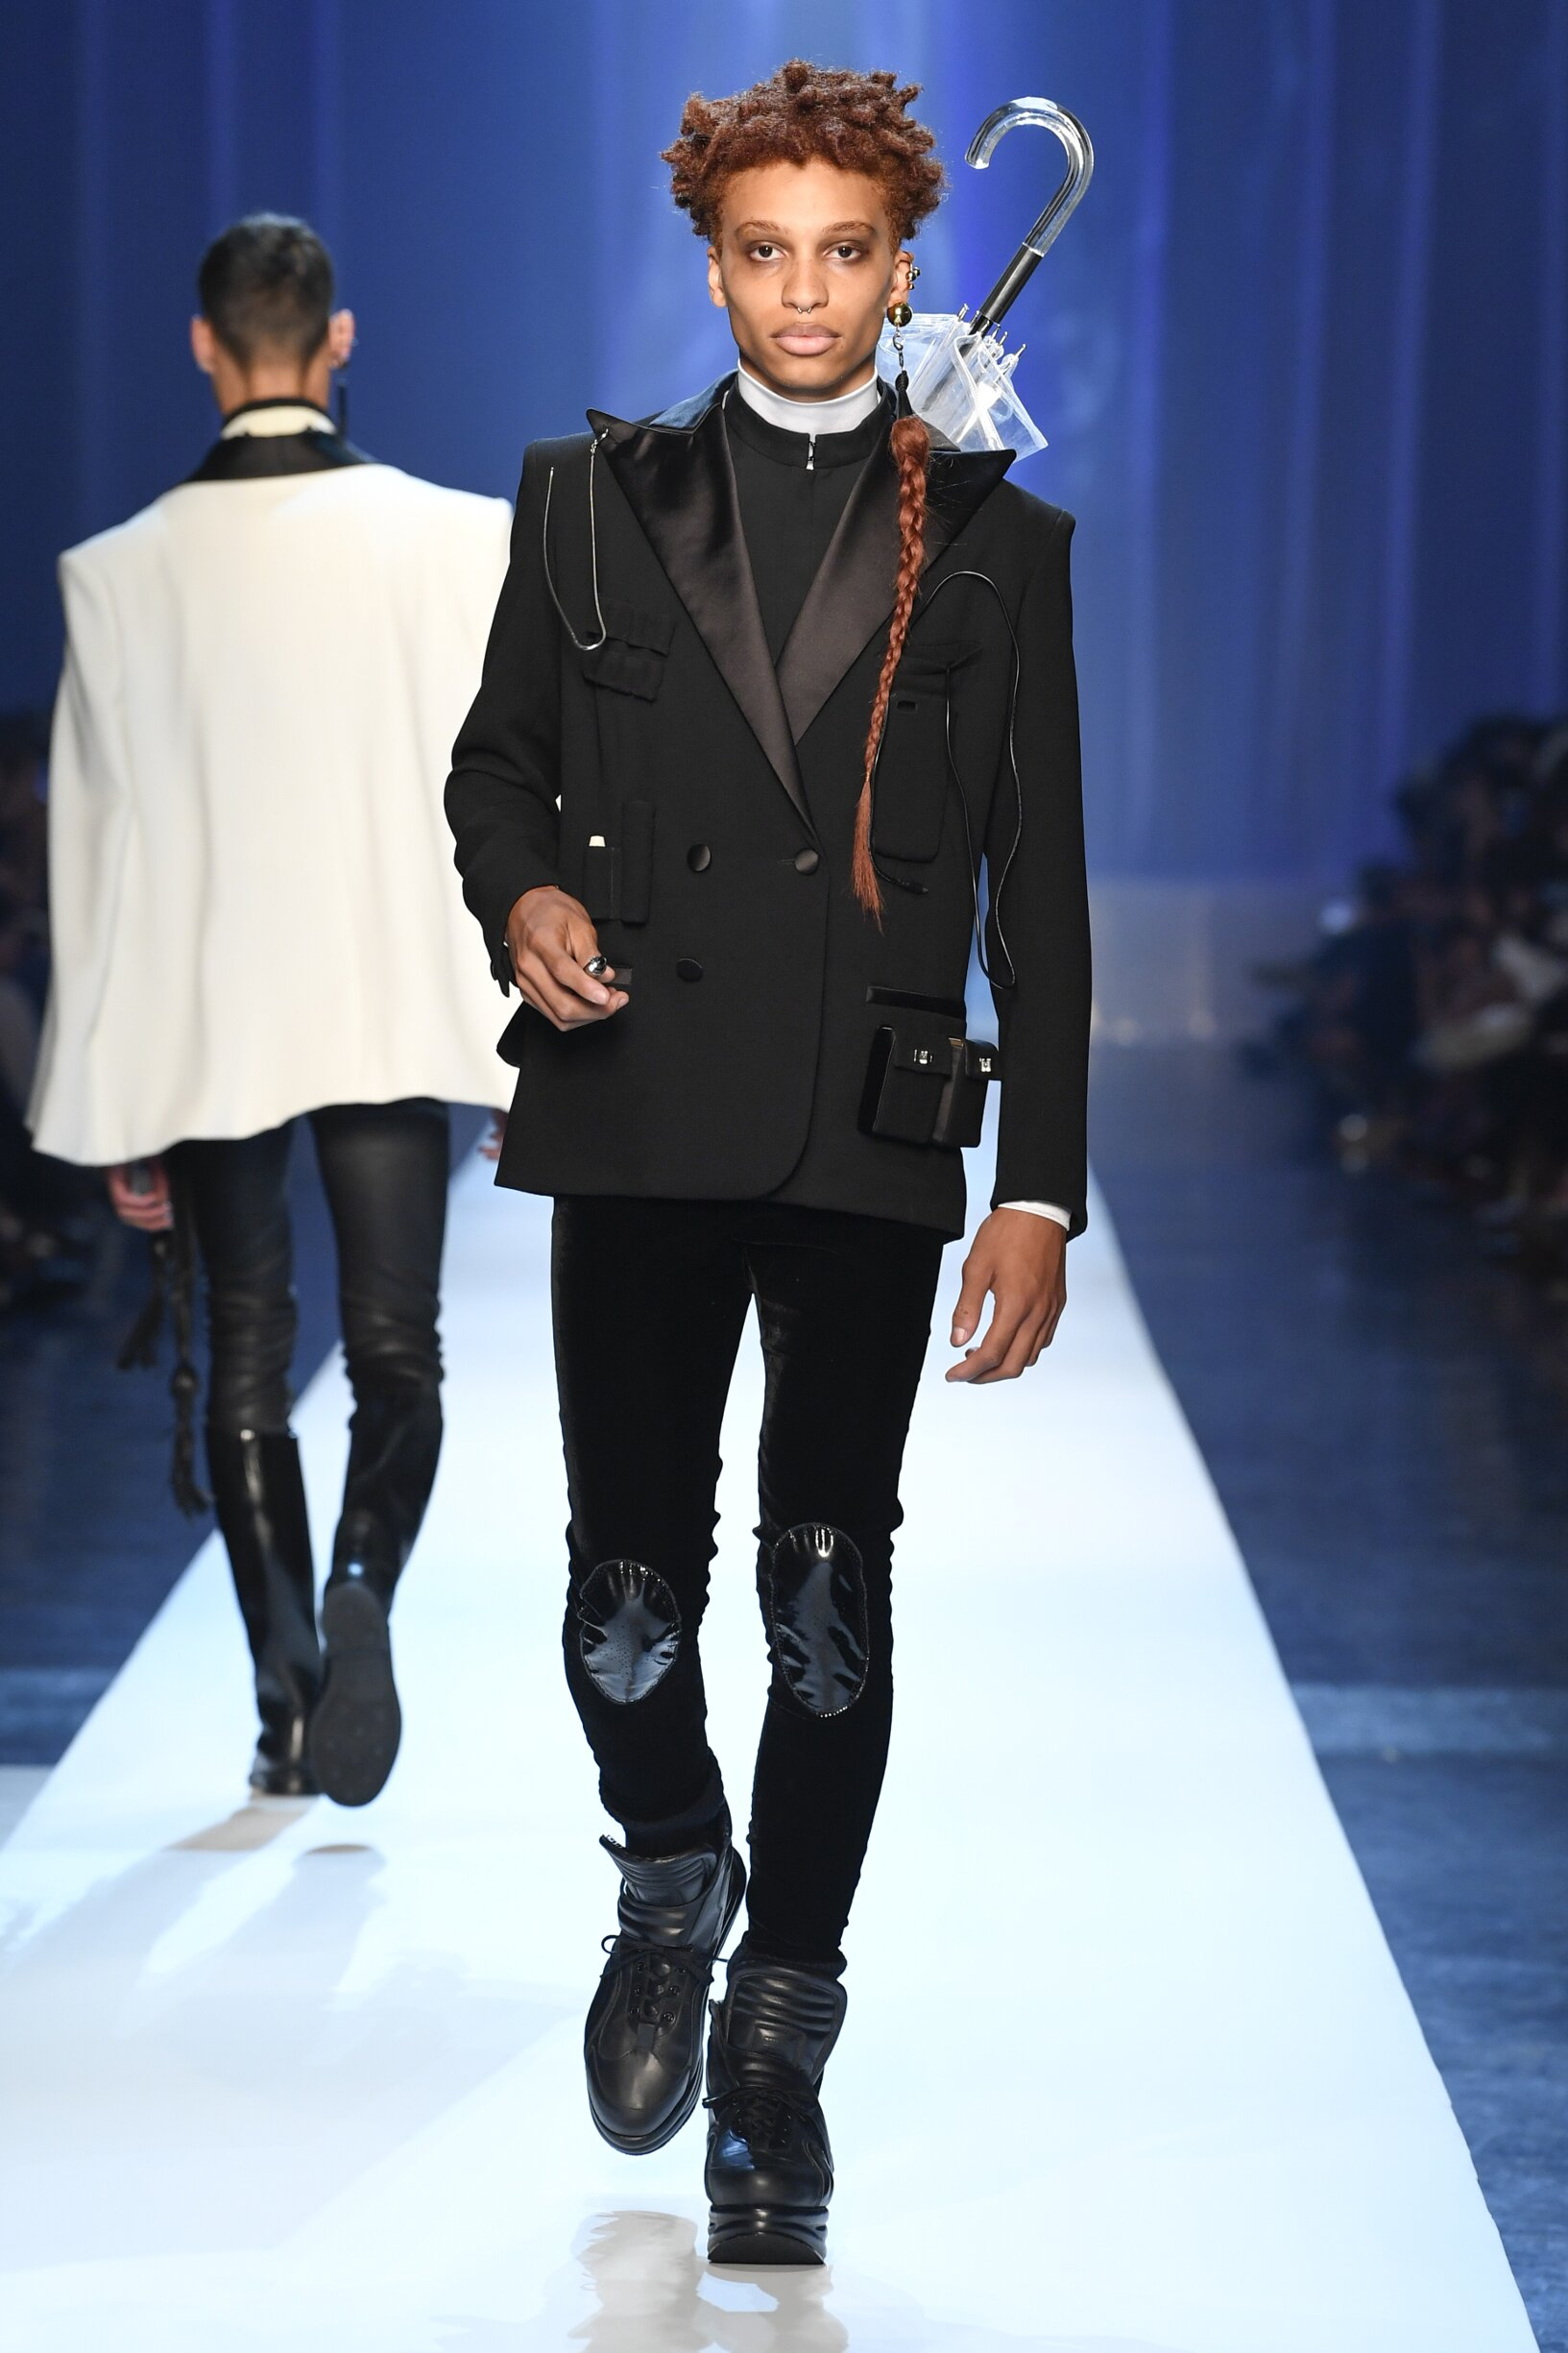 Jean-Paul Gaultier Haute Couture Fall Winter 2018 Mens Collection Paris Fashion Week